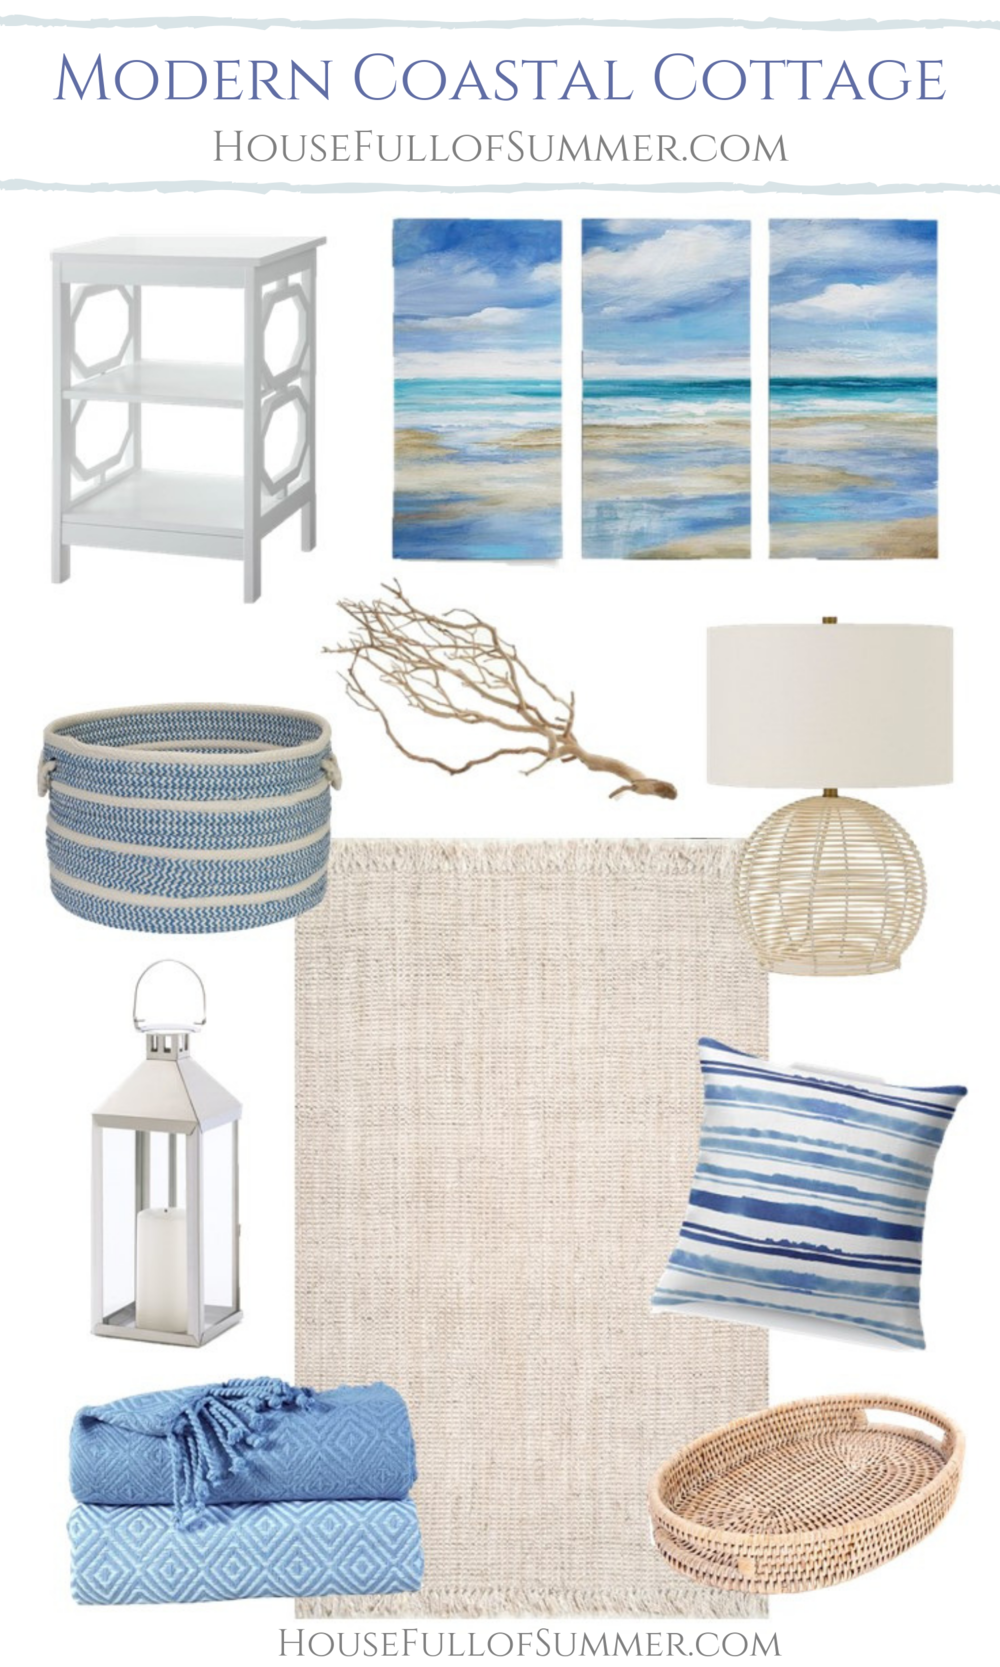 Tips for Decorating in Modern Coastal Cottage Style — House Full of Summer - Coastal Home & Lifestyle